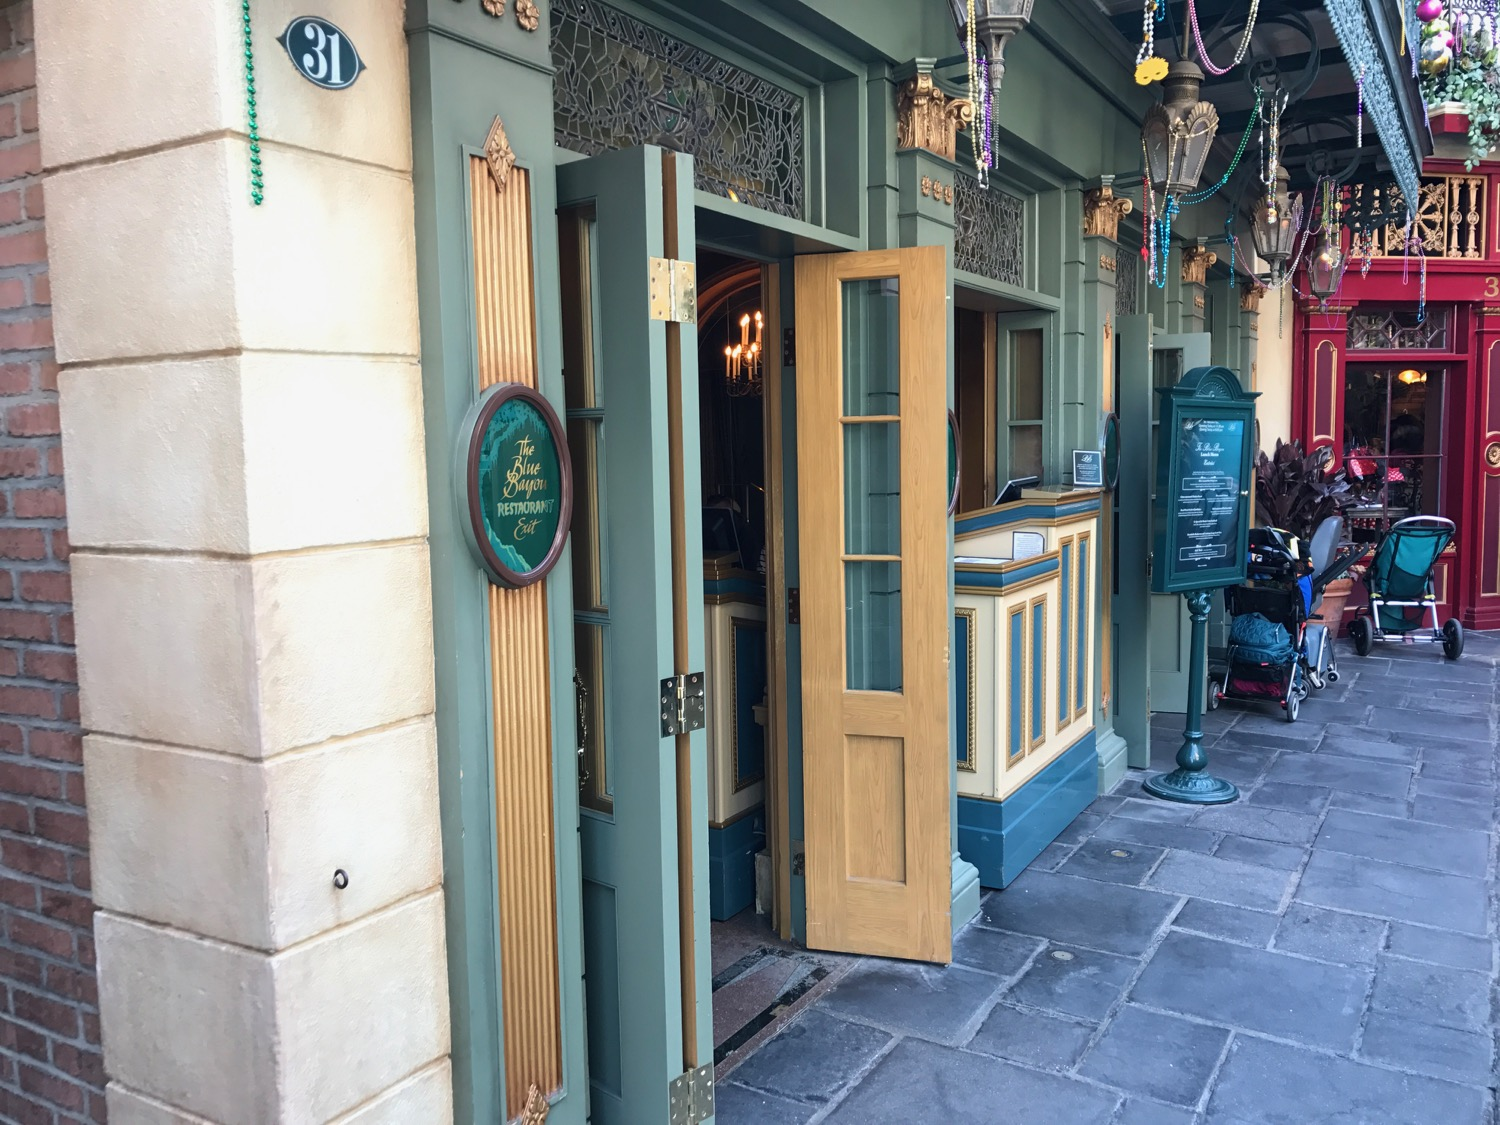 Blue Bayou Disneyland Review - 14